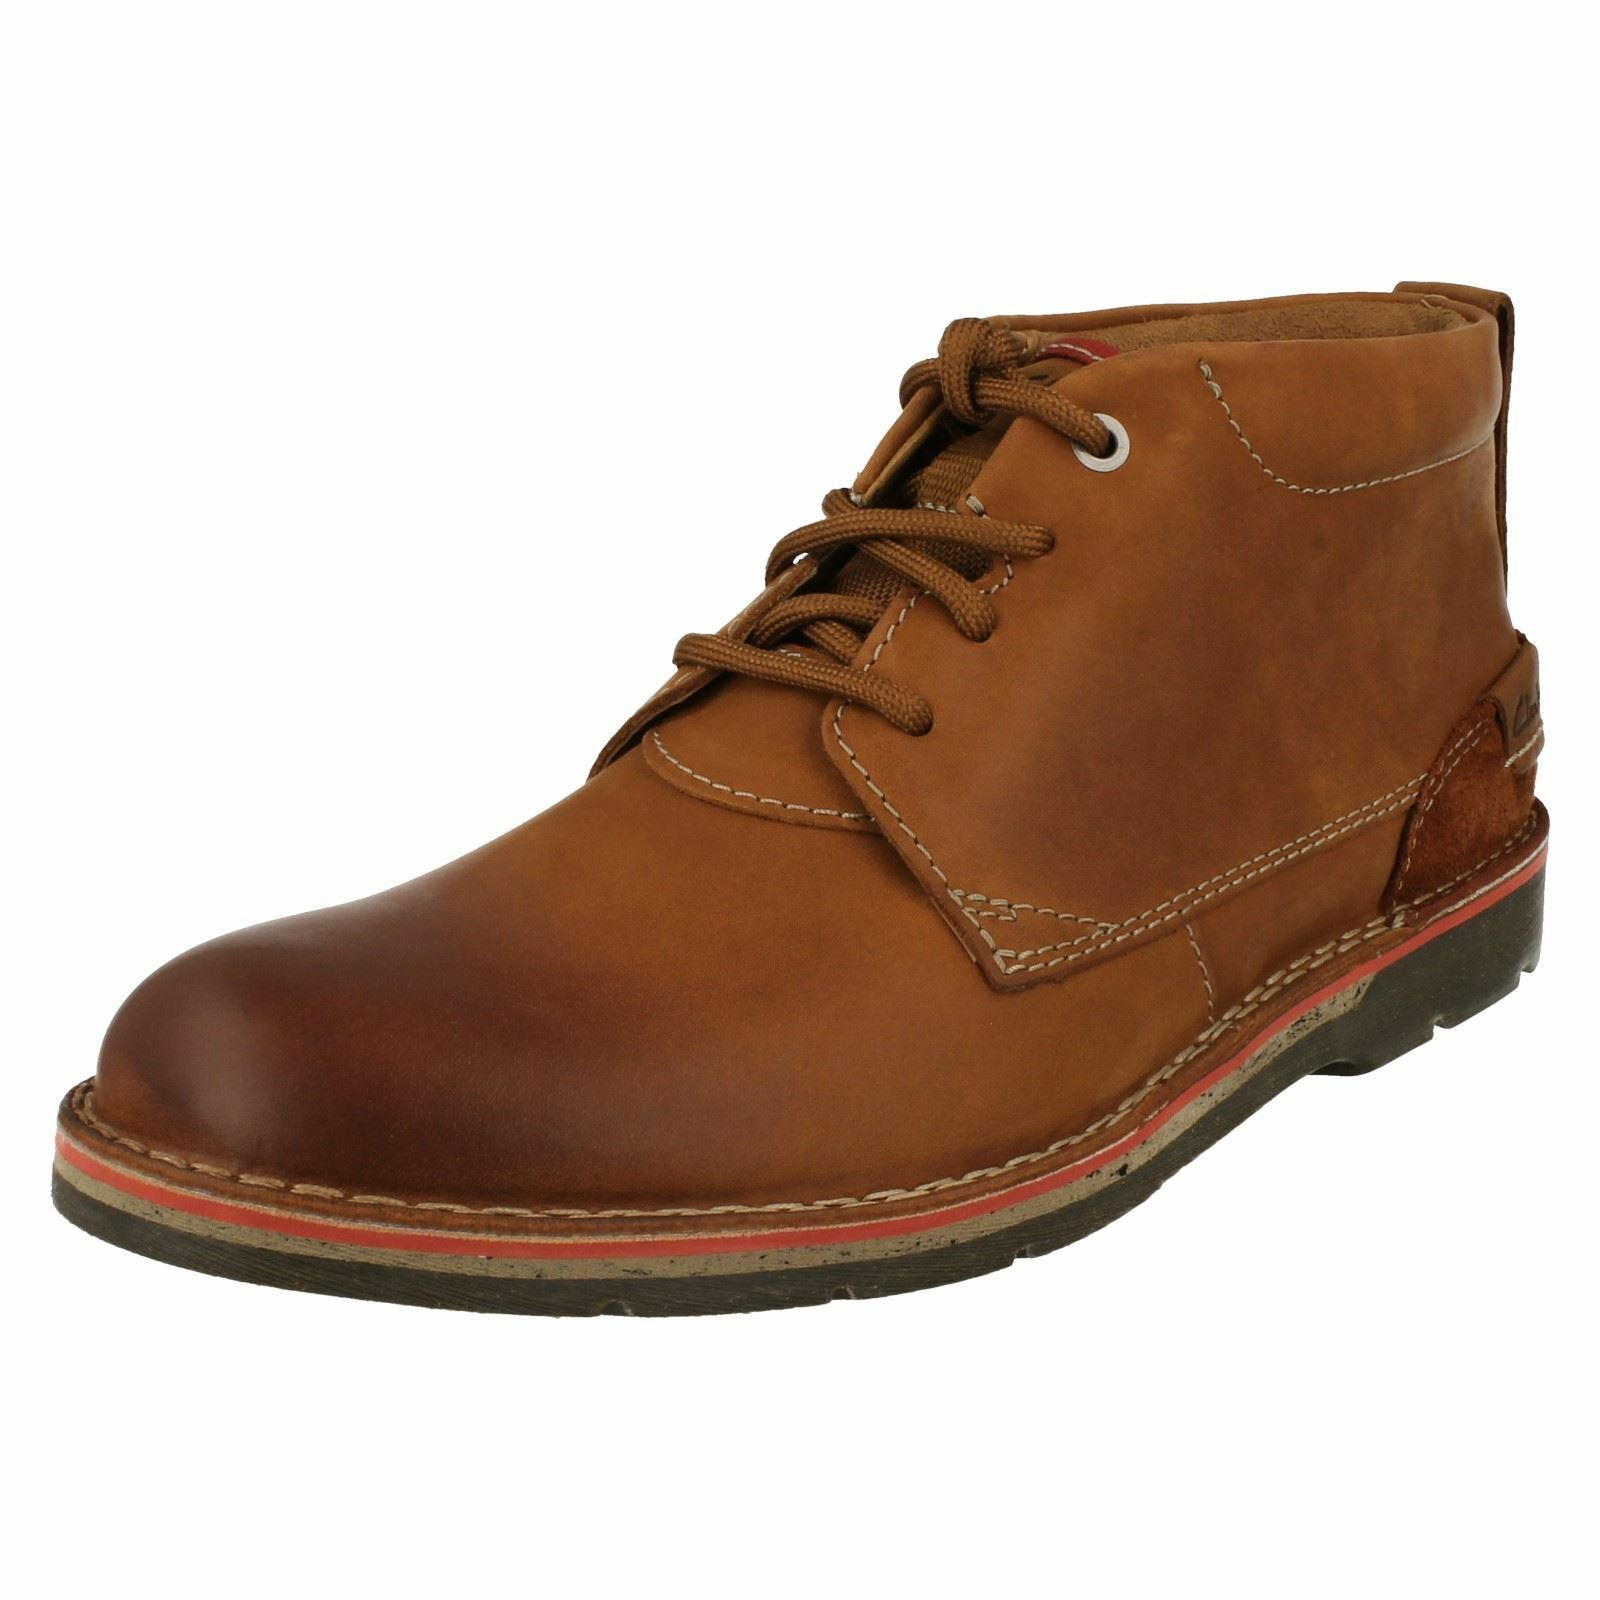 Mens Clarks Casual Boots 'Edgewick Mid'